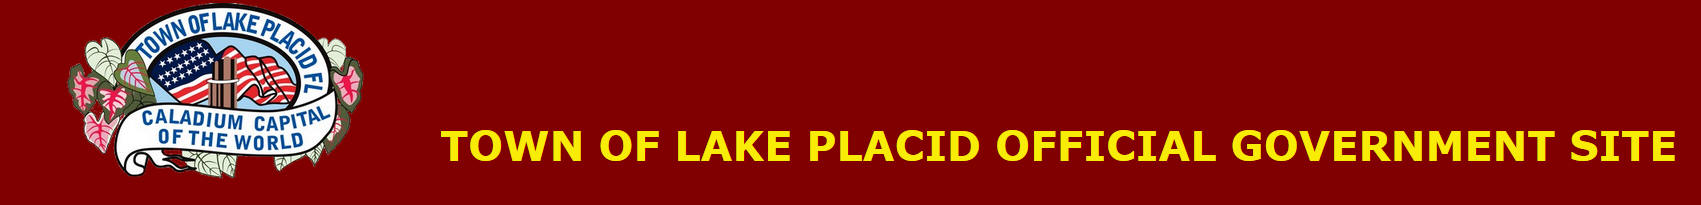 Town of Lake Placid Header